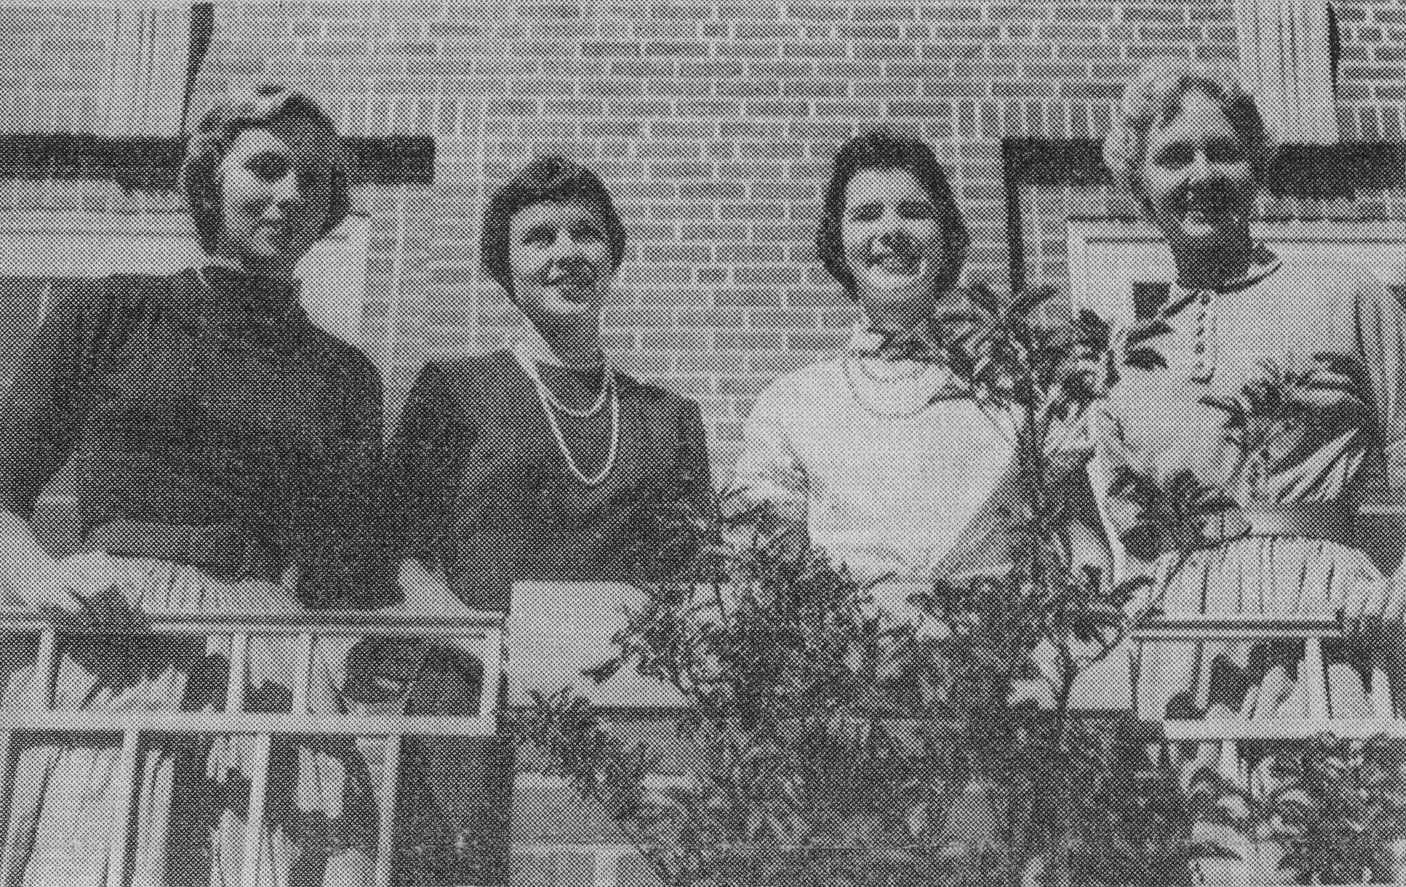 From The Radcliffe News, the 1955 Miss Radcliffe Finalists: (left to right) Ann Baker, Cynthia Charmichael, Holly Carleton (Miss Radcliffe), and Mary Lou Severn.